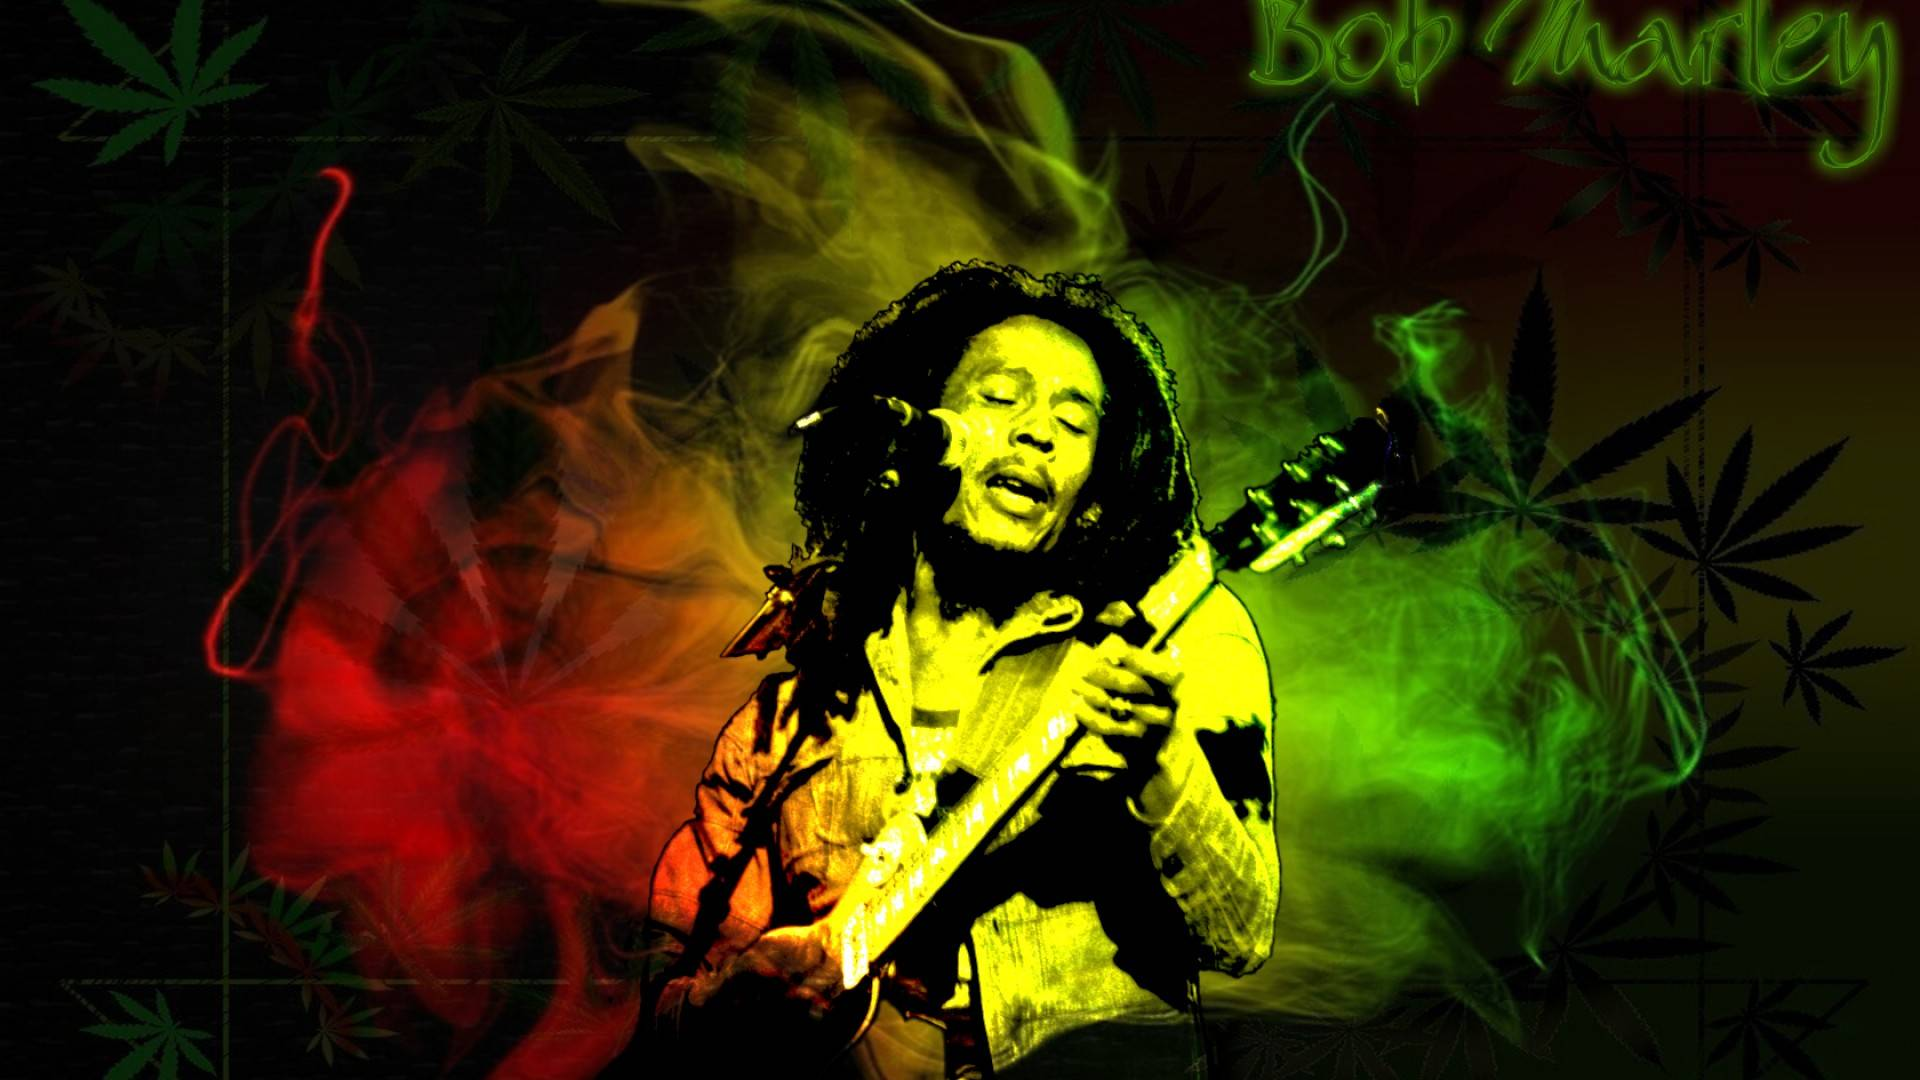 Wallpaper iphone rasta - Bob Marley Wallpapers Pictures Images